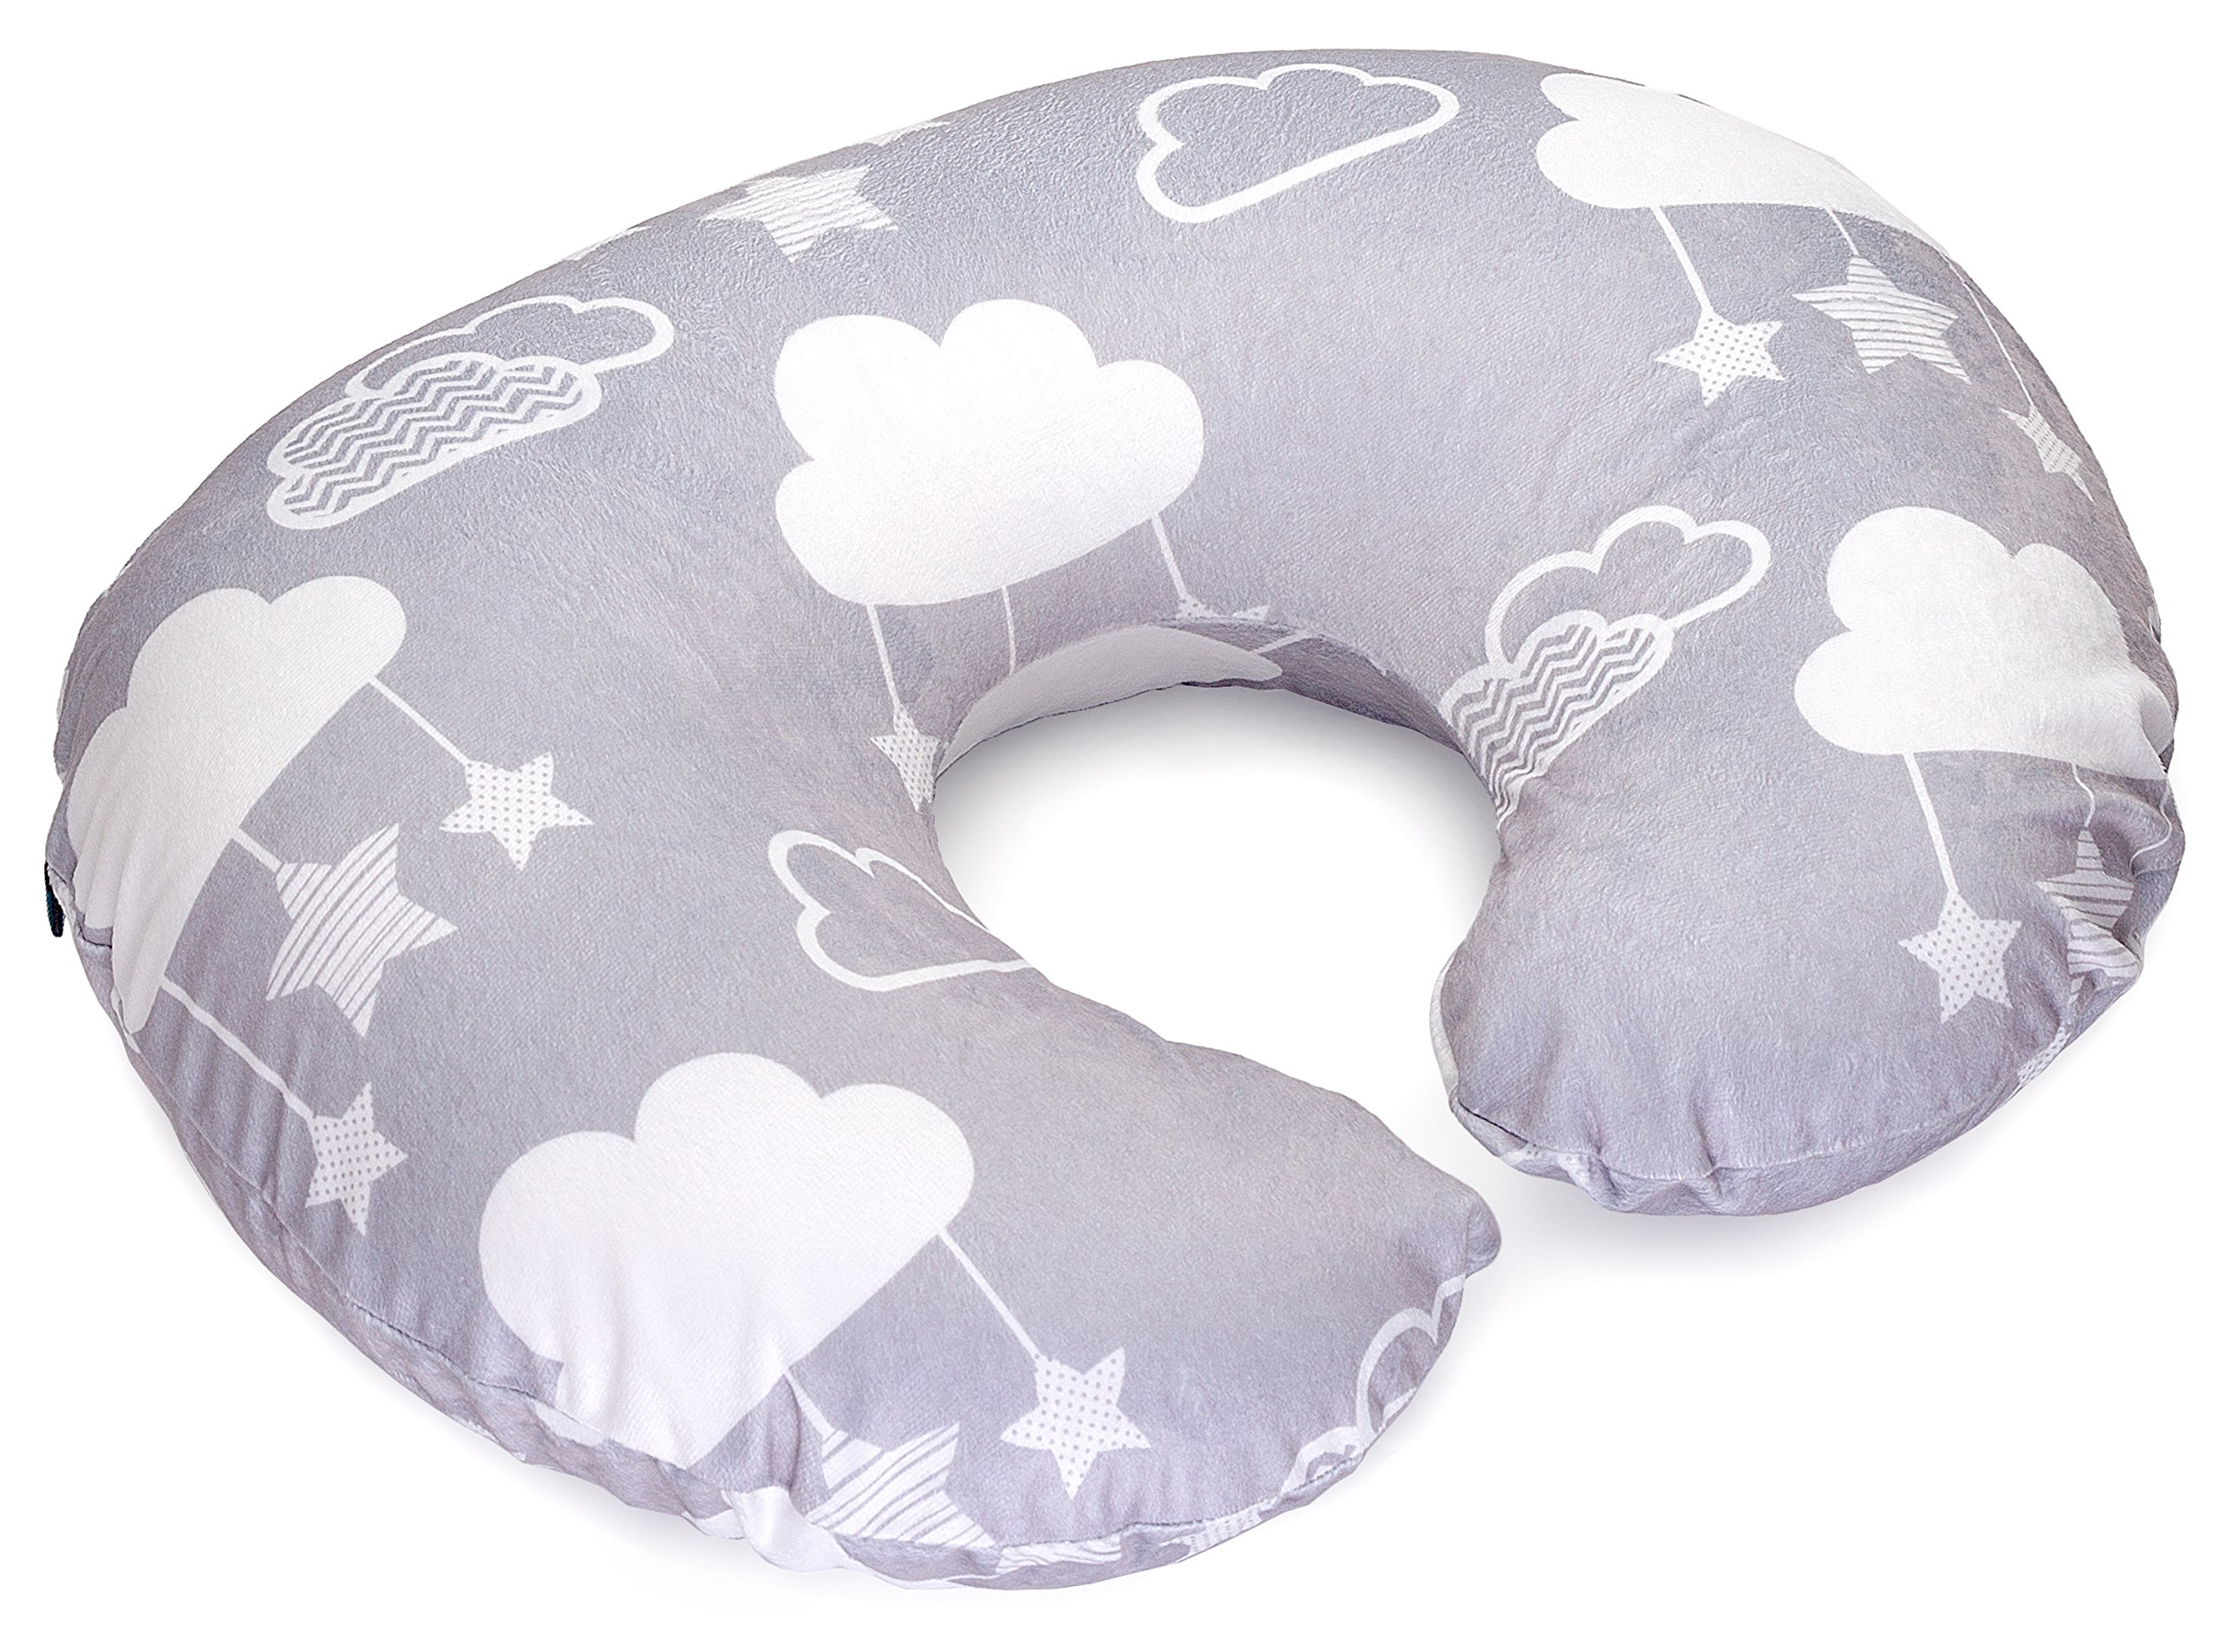 Minky Nursing Pillow Cover - Perfect Slipcover for Breastfeeding Moms | Soft Fabric Fits Snug On Infant Nursing Pillows to Aid Mothers While Breast Feeding | Stars and Clouds by Childlike Behavior